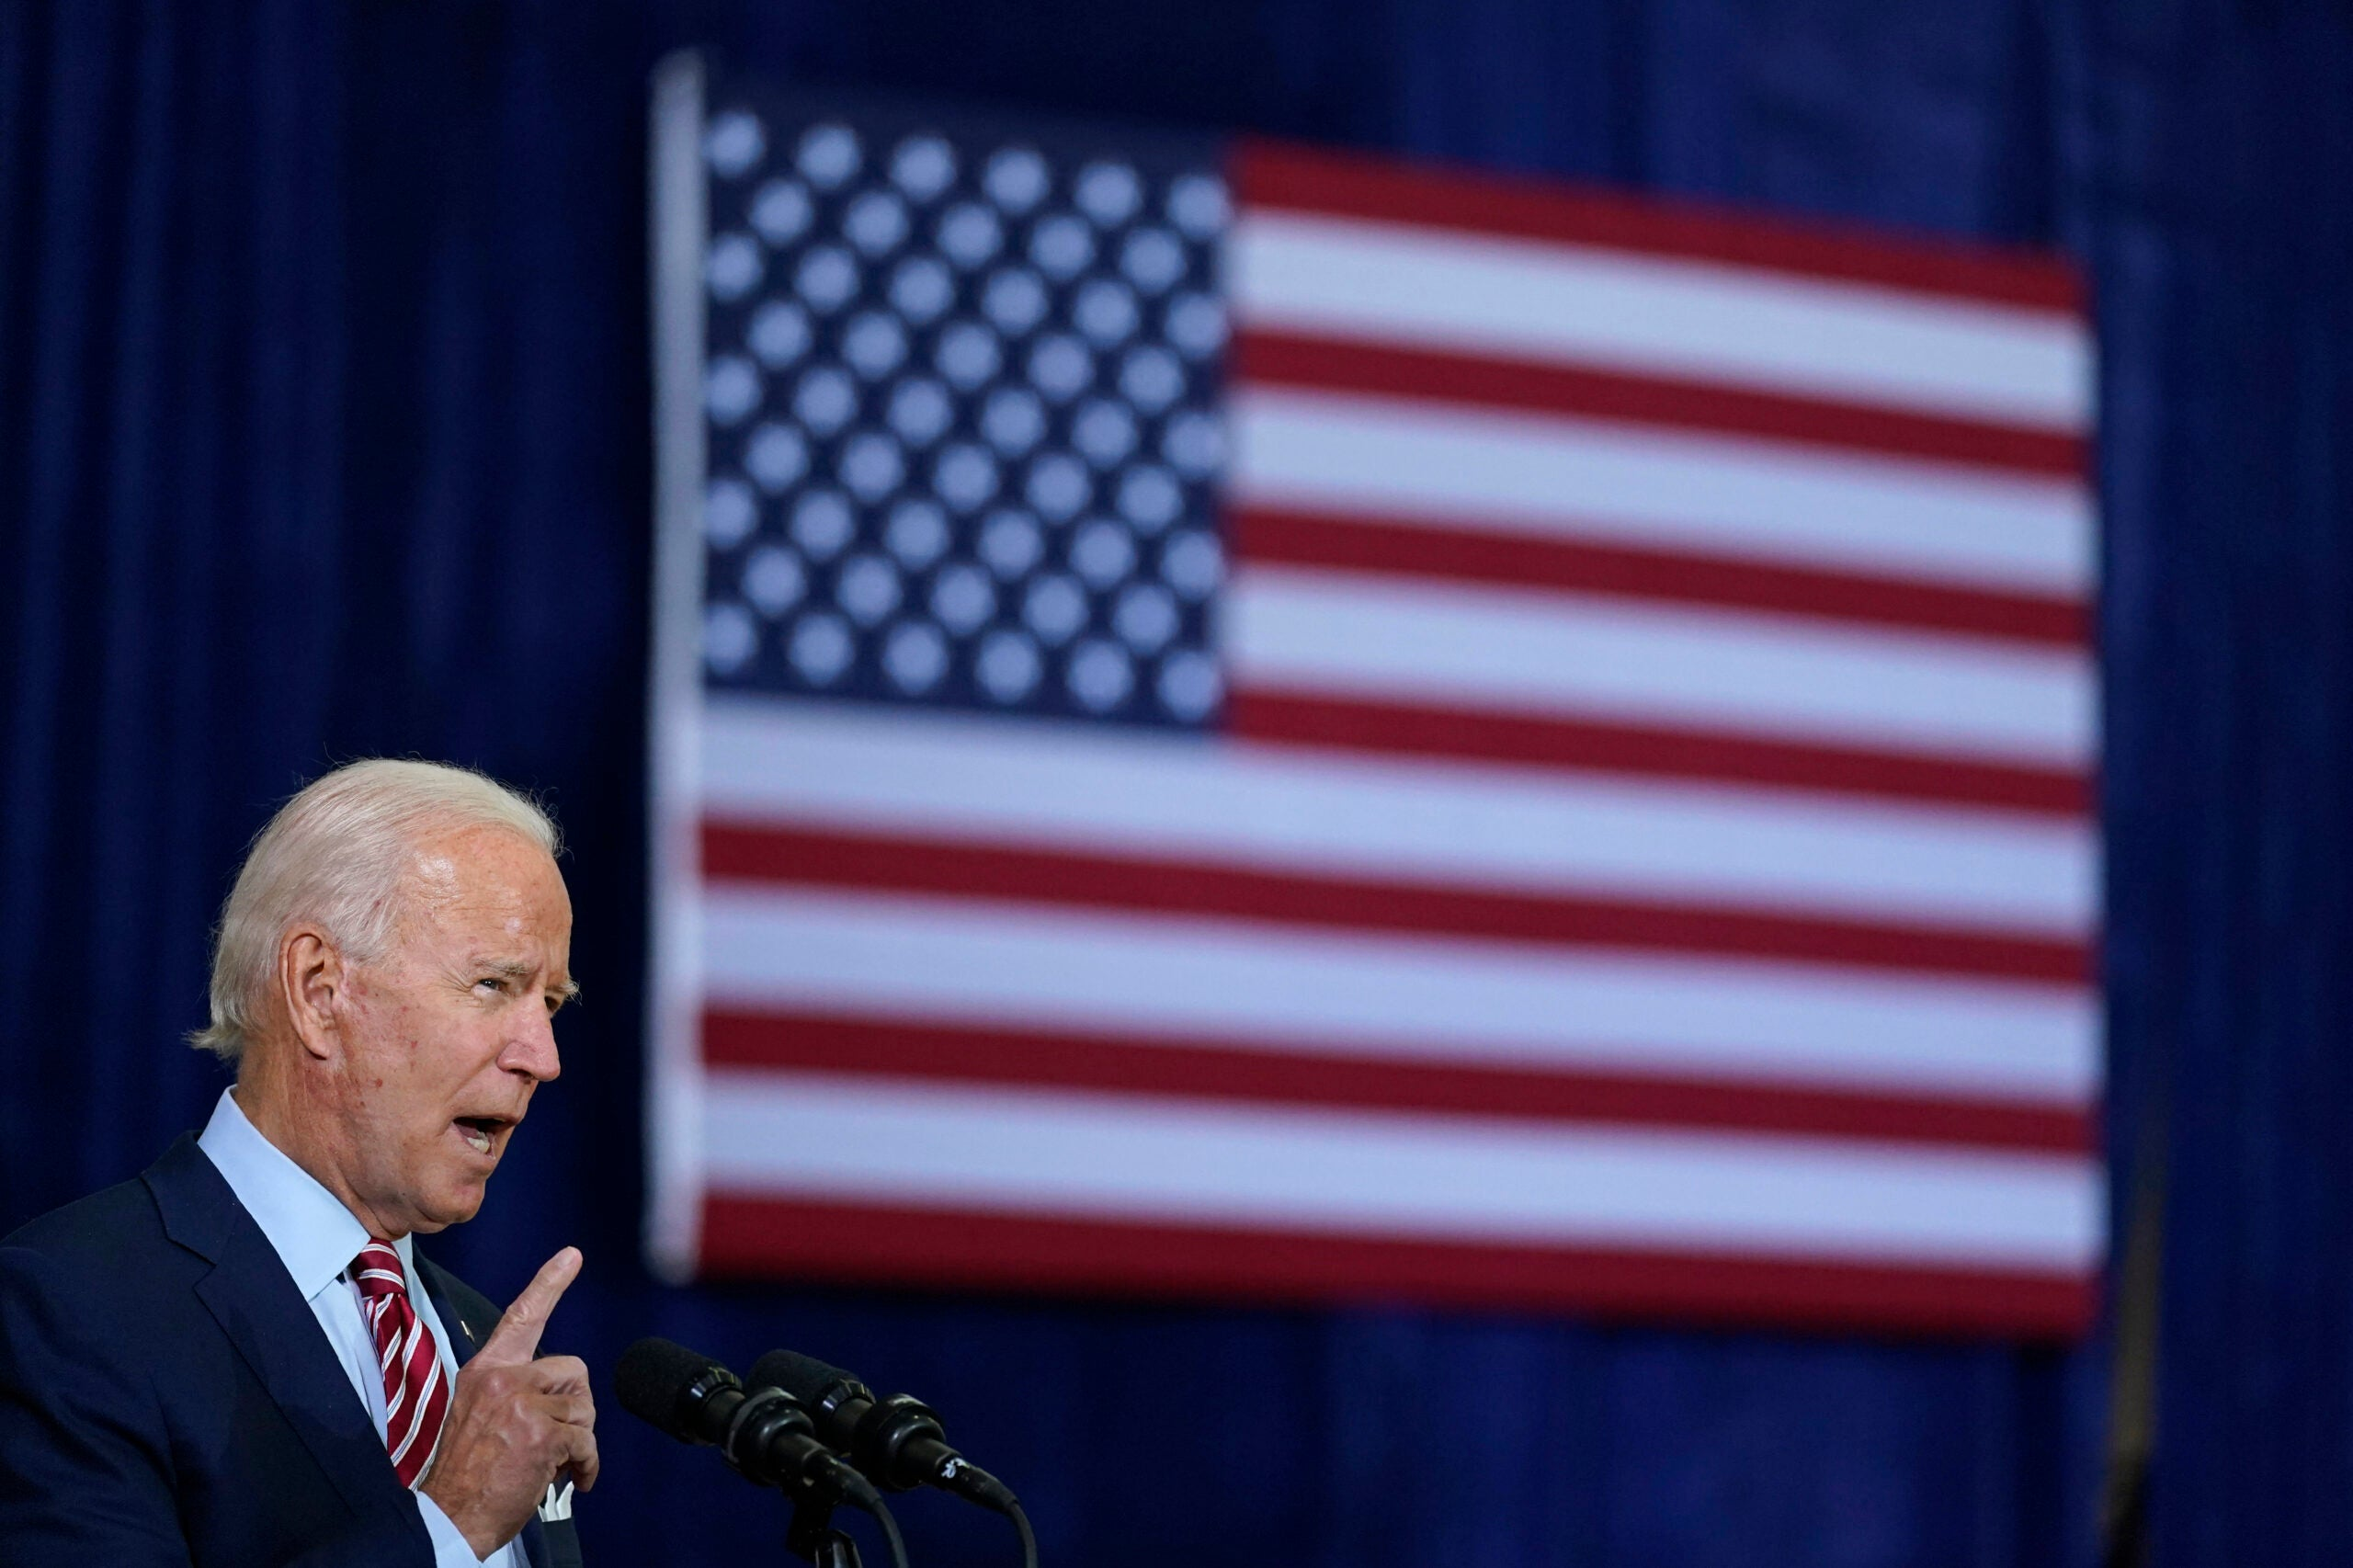 Joe Biden trotted out the trope of the damaged veteran during a recent campaign speech